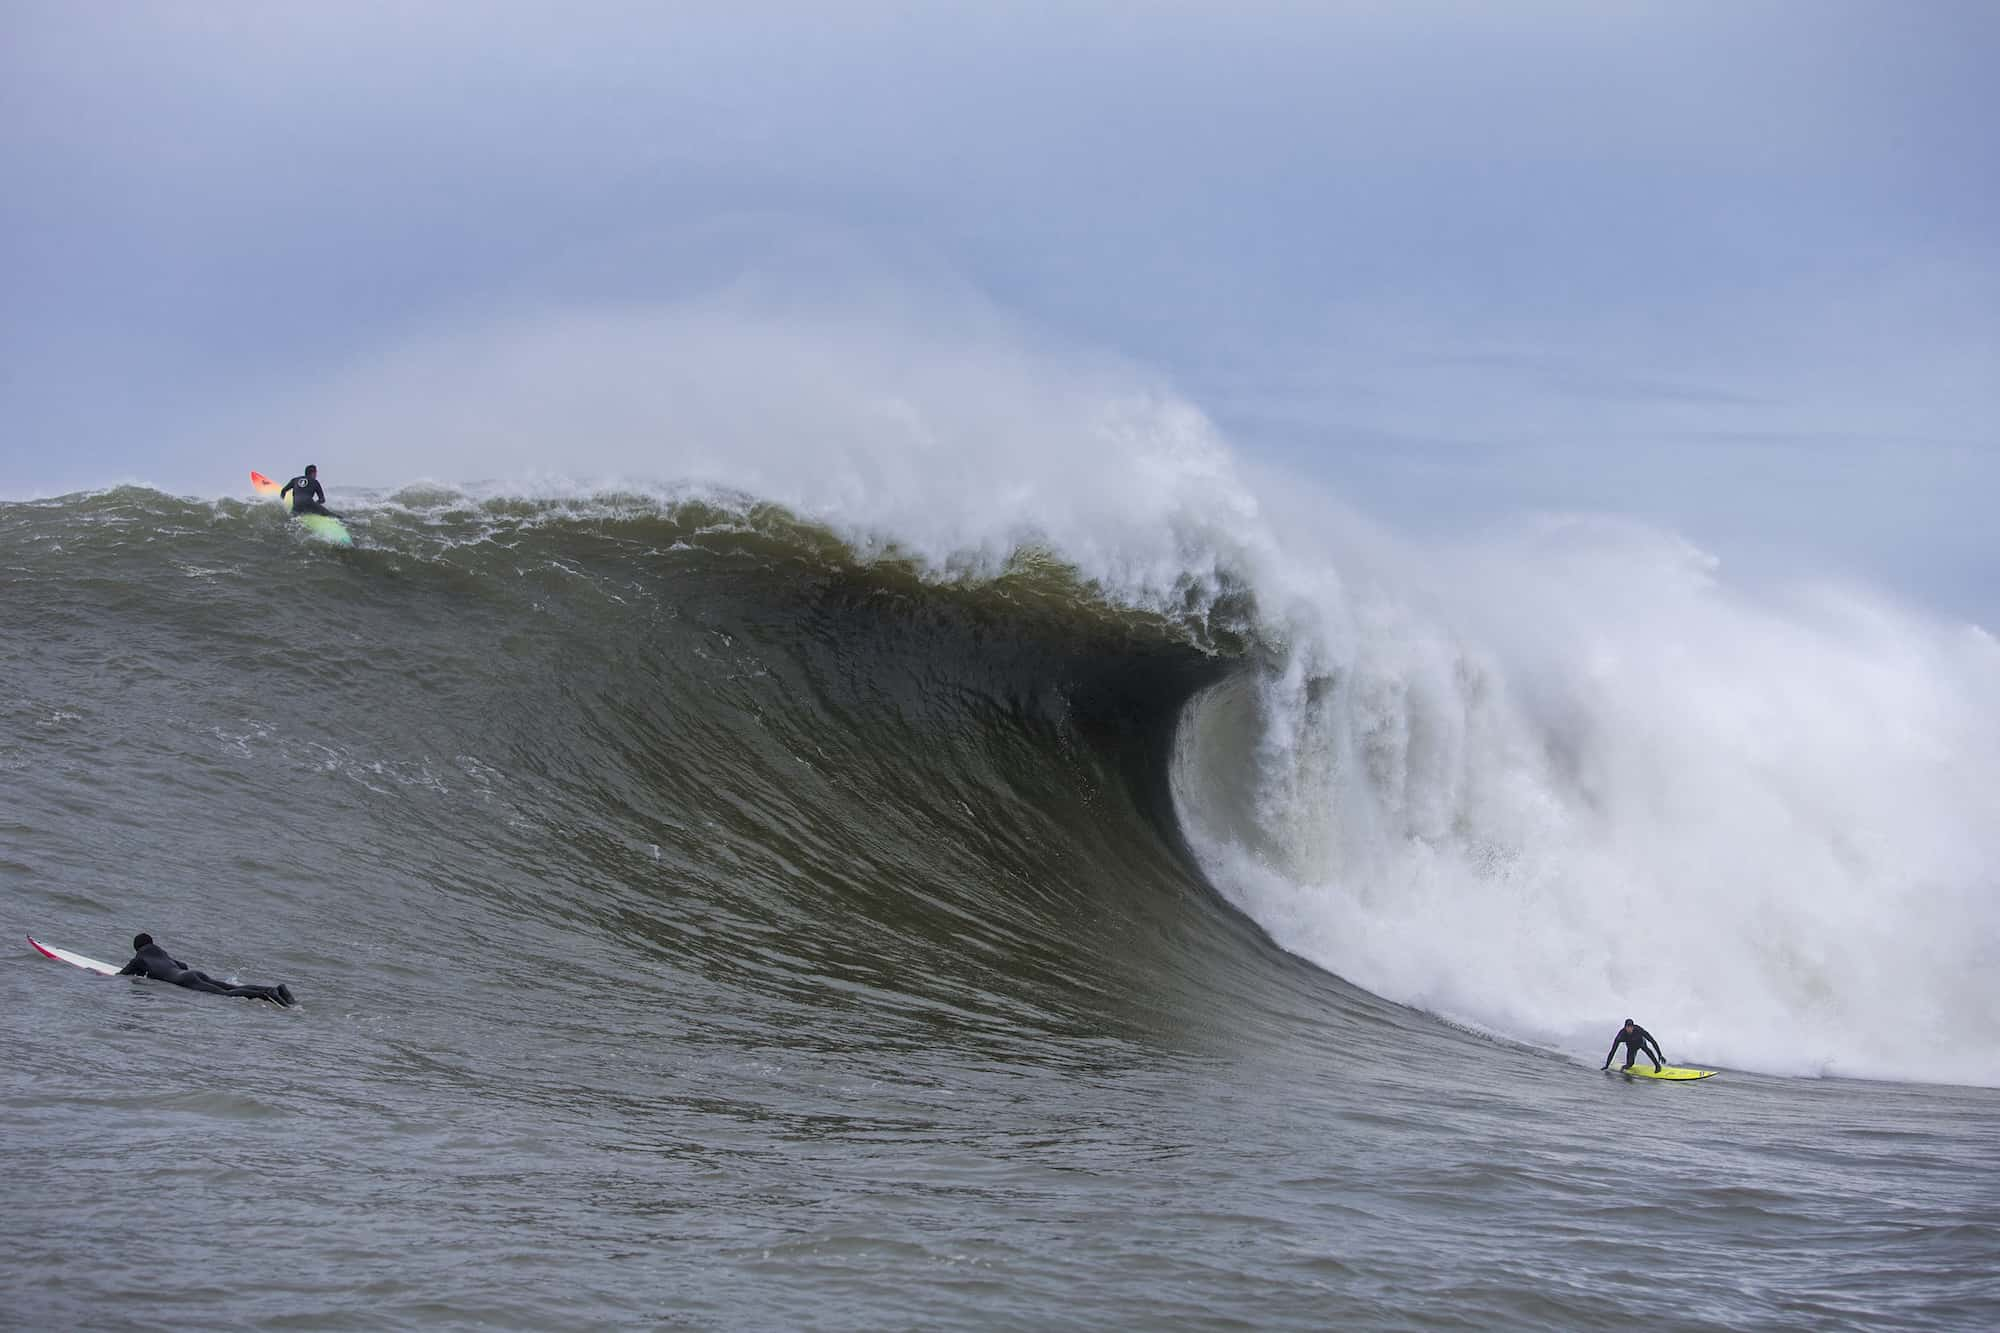 Stort. Brunt. Tungt. Mavericks. Foto: Fred Pompermeyer.